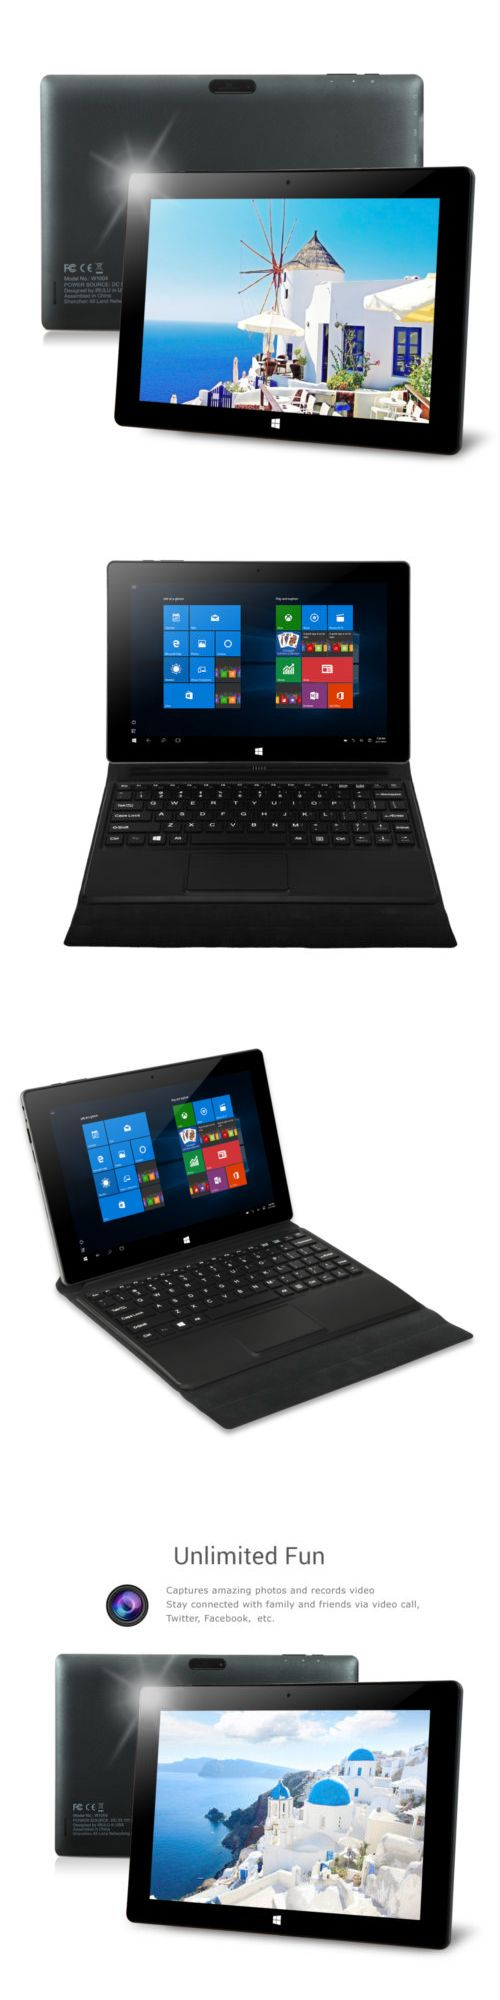 computers: Irulu 10.1 Windows10 Walknbook Intel Tablet Pc 2G+32G Hdmi Laptop Bluetooth Hot -> BUY IT NOW ONLY: $119.99 on eBay!